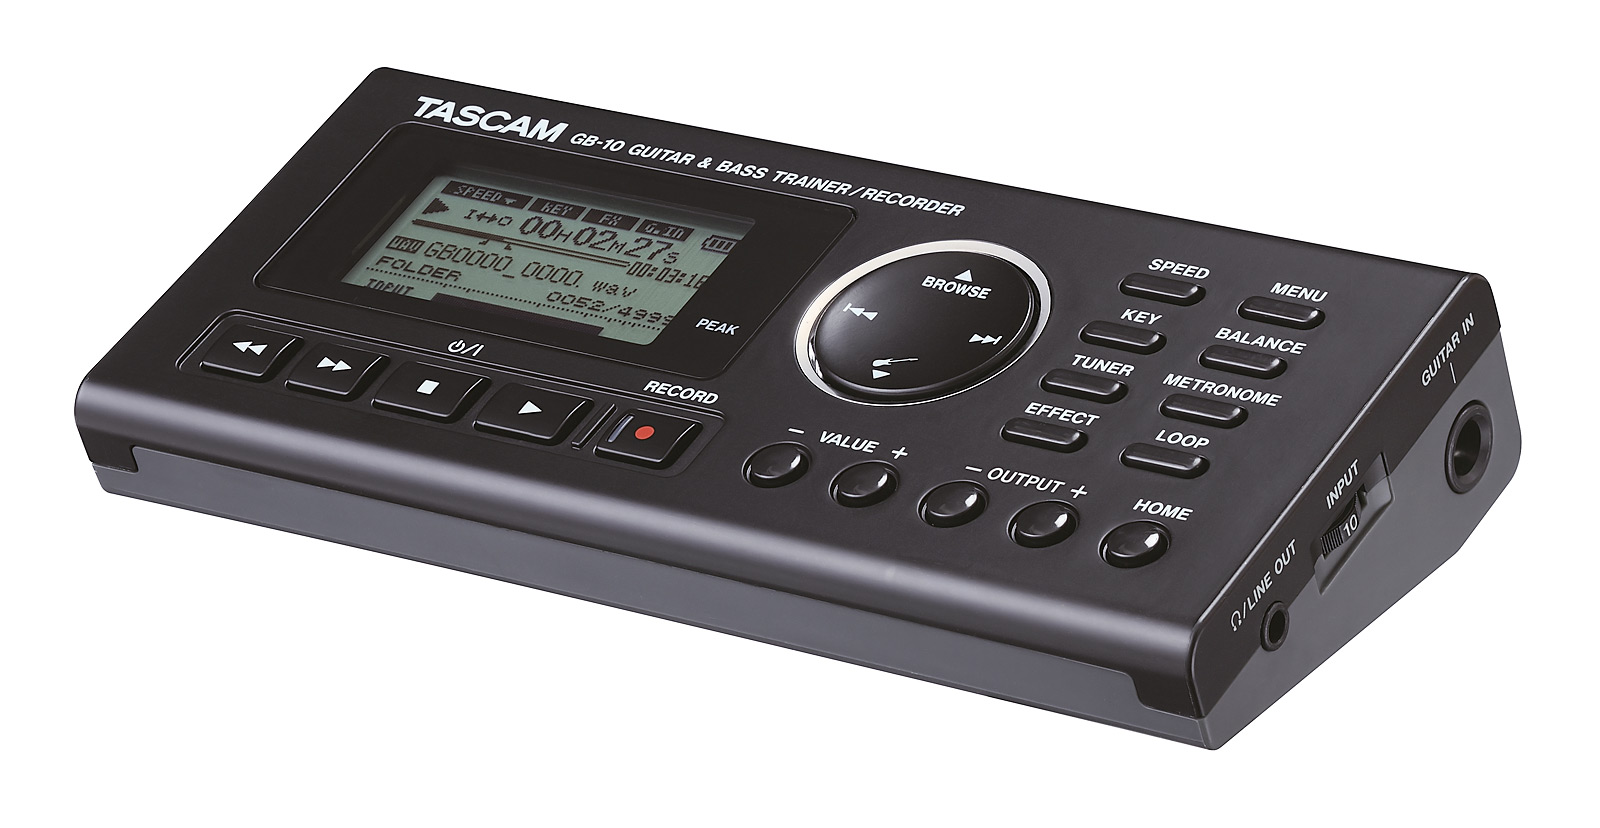 Tascam Trainer-Recorder for Guitar and Bass with effects